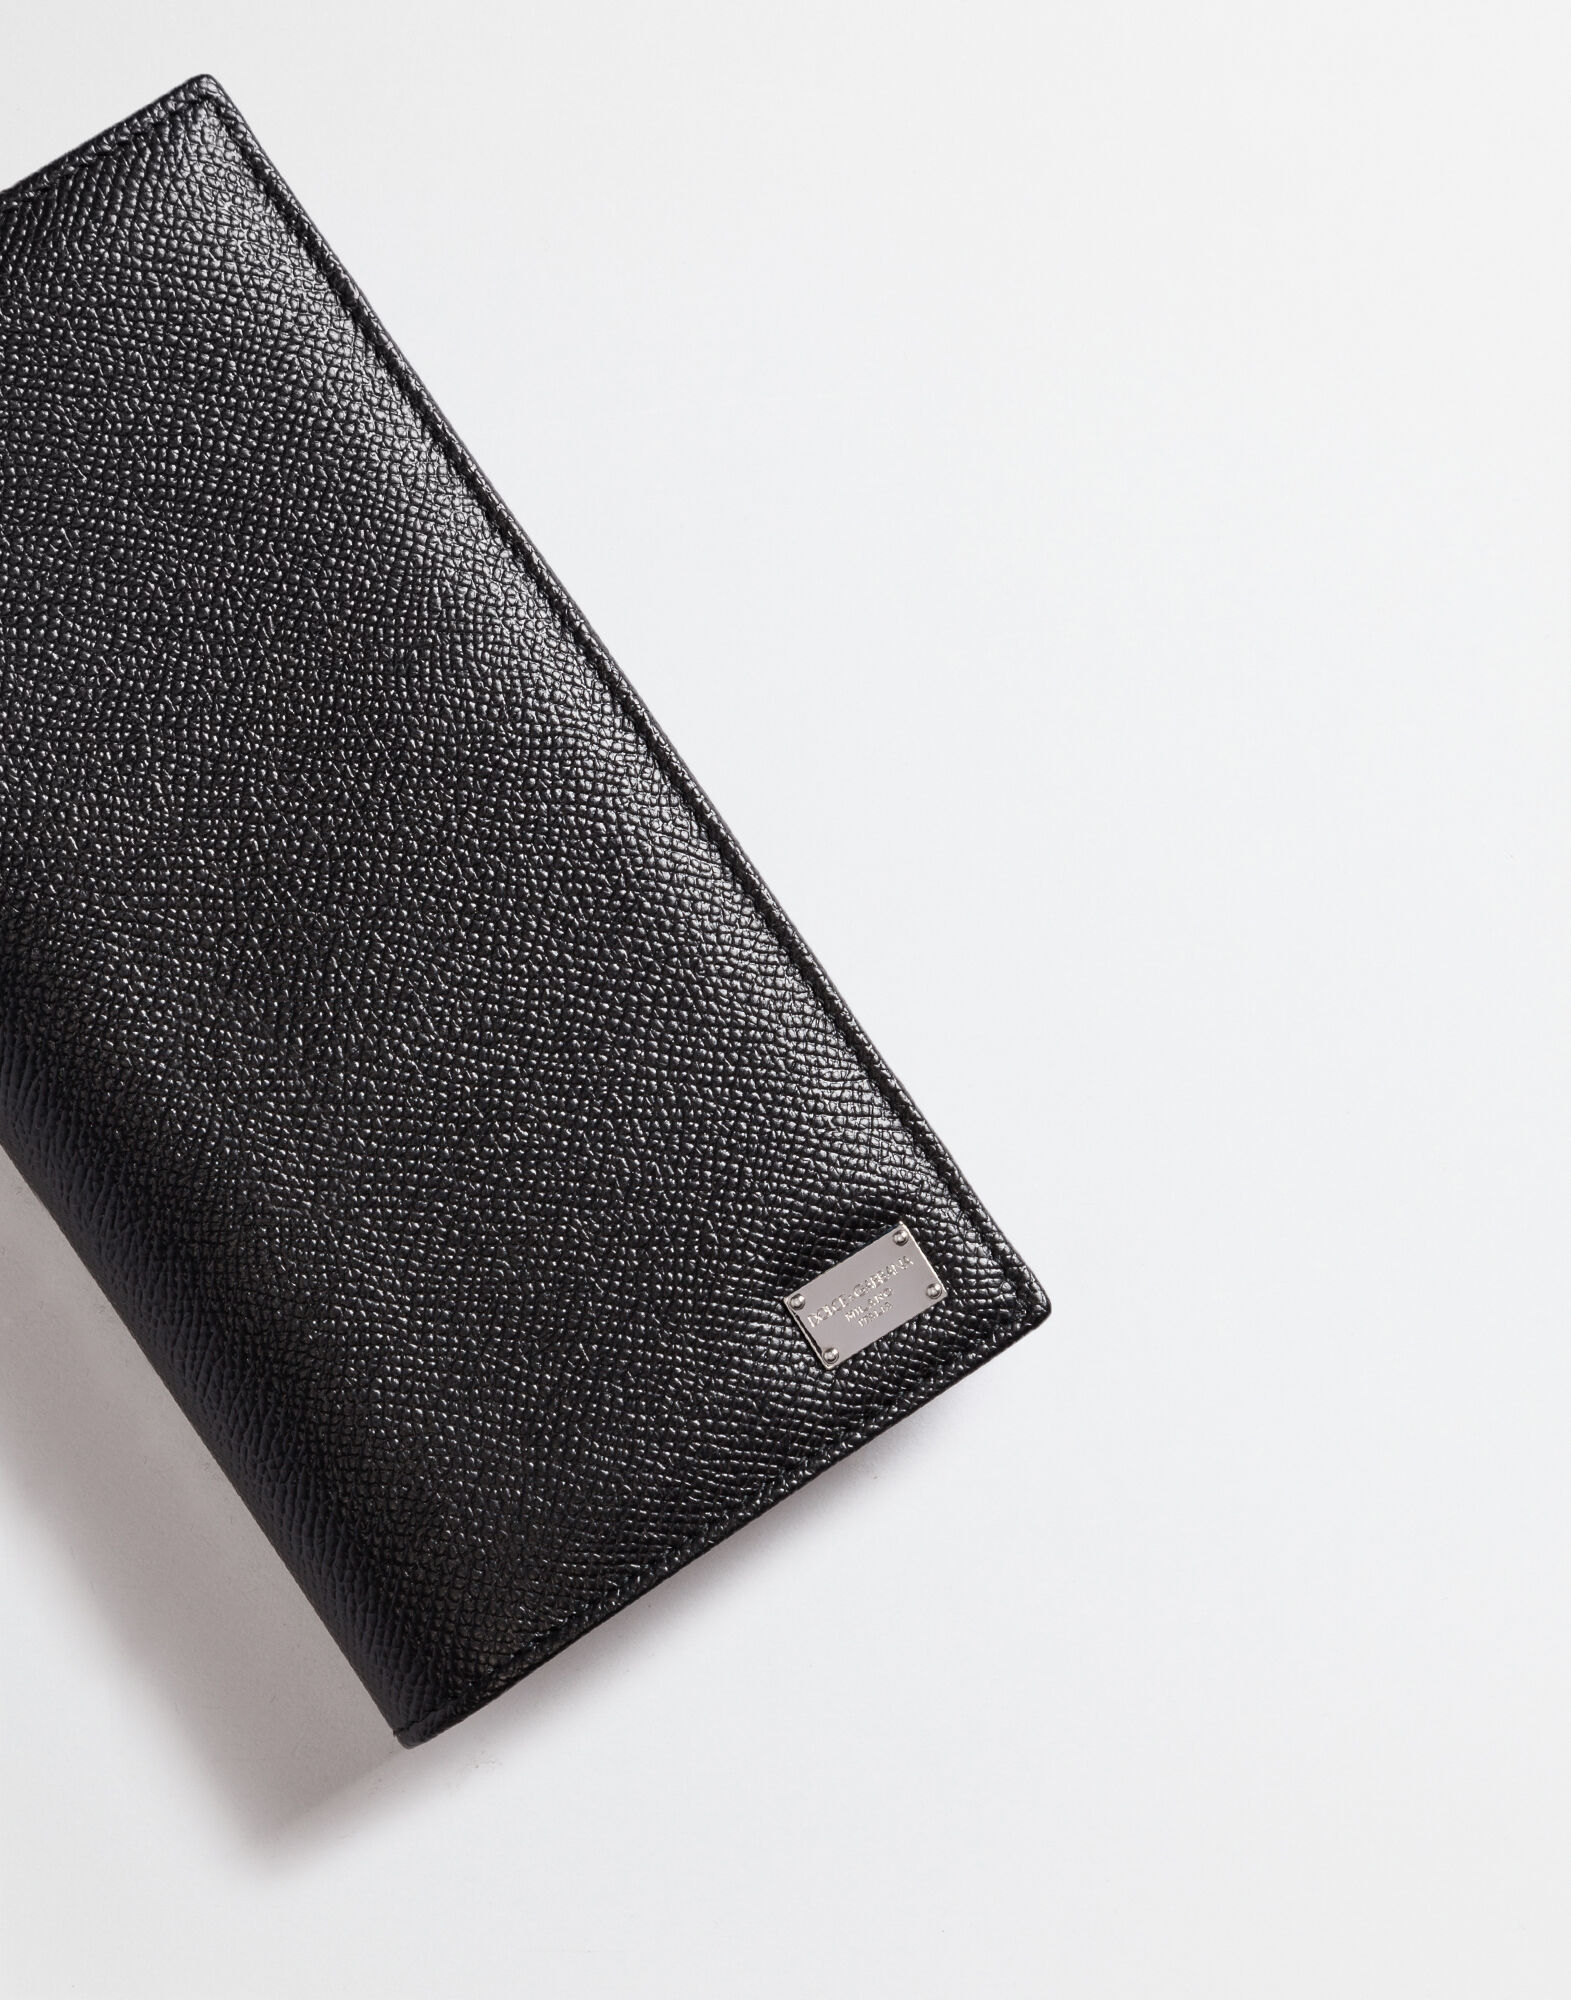 VERTICAL WALLET IN DAUPHINE LEATHER